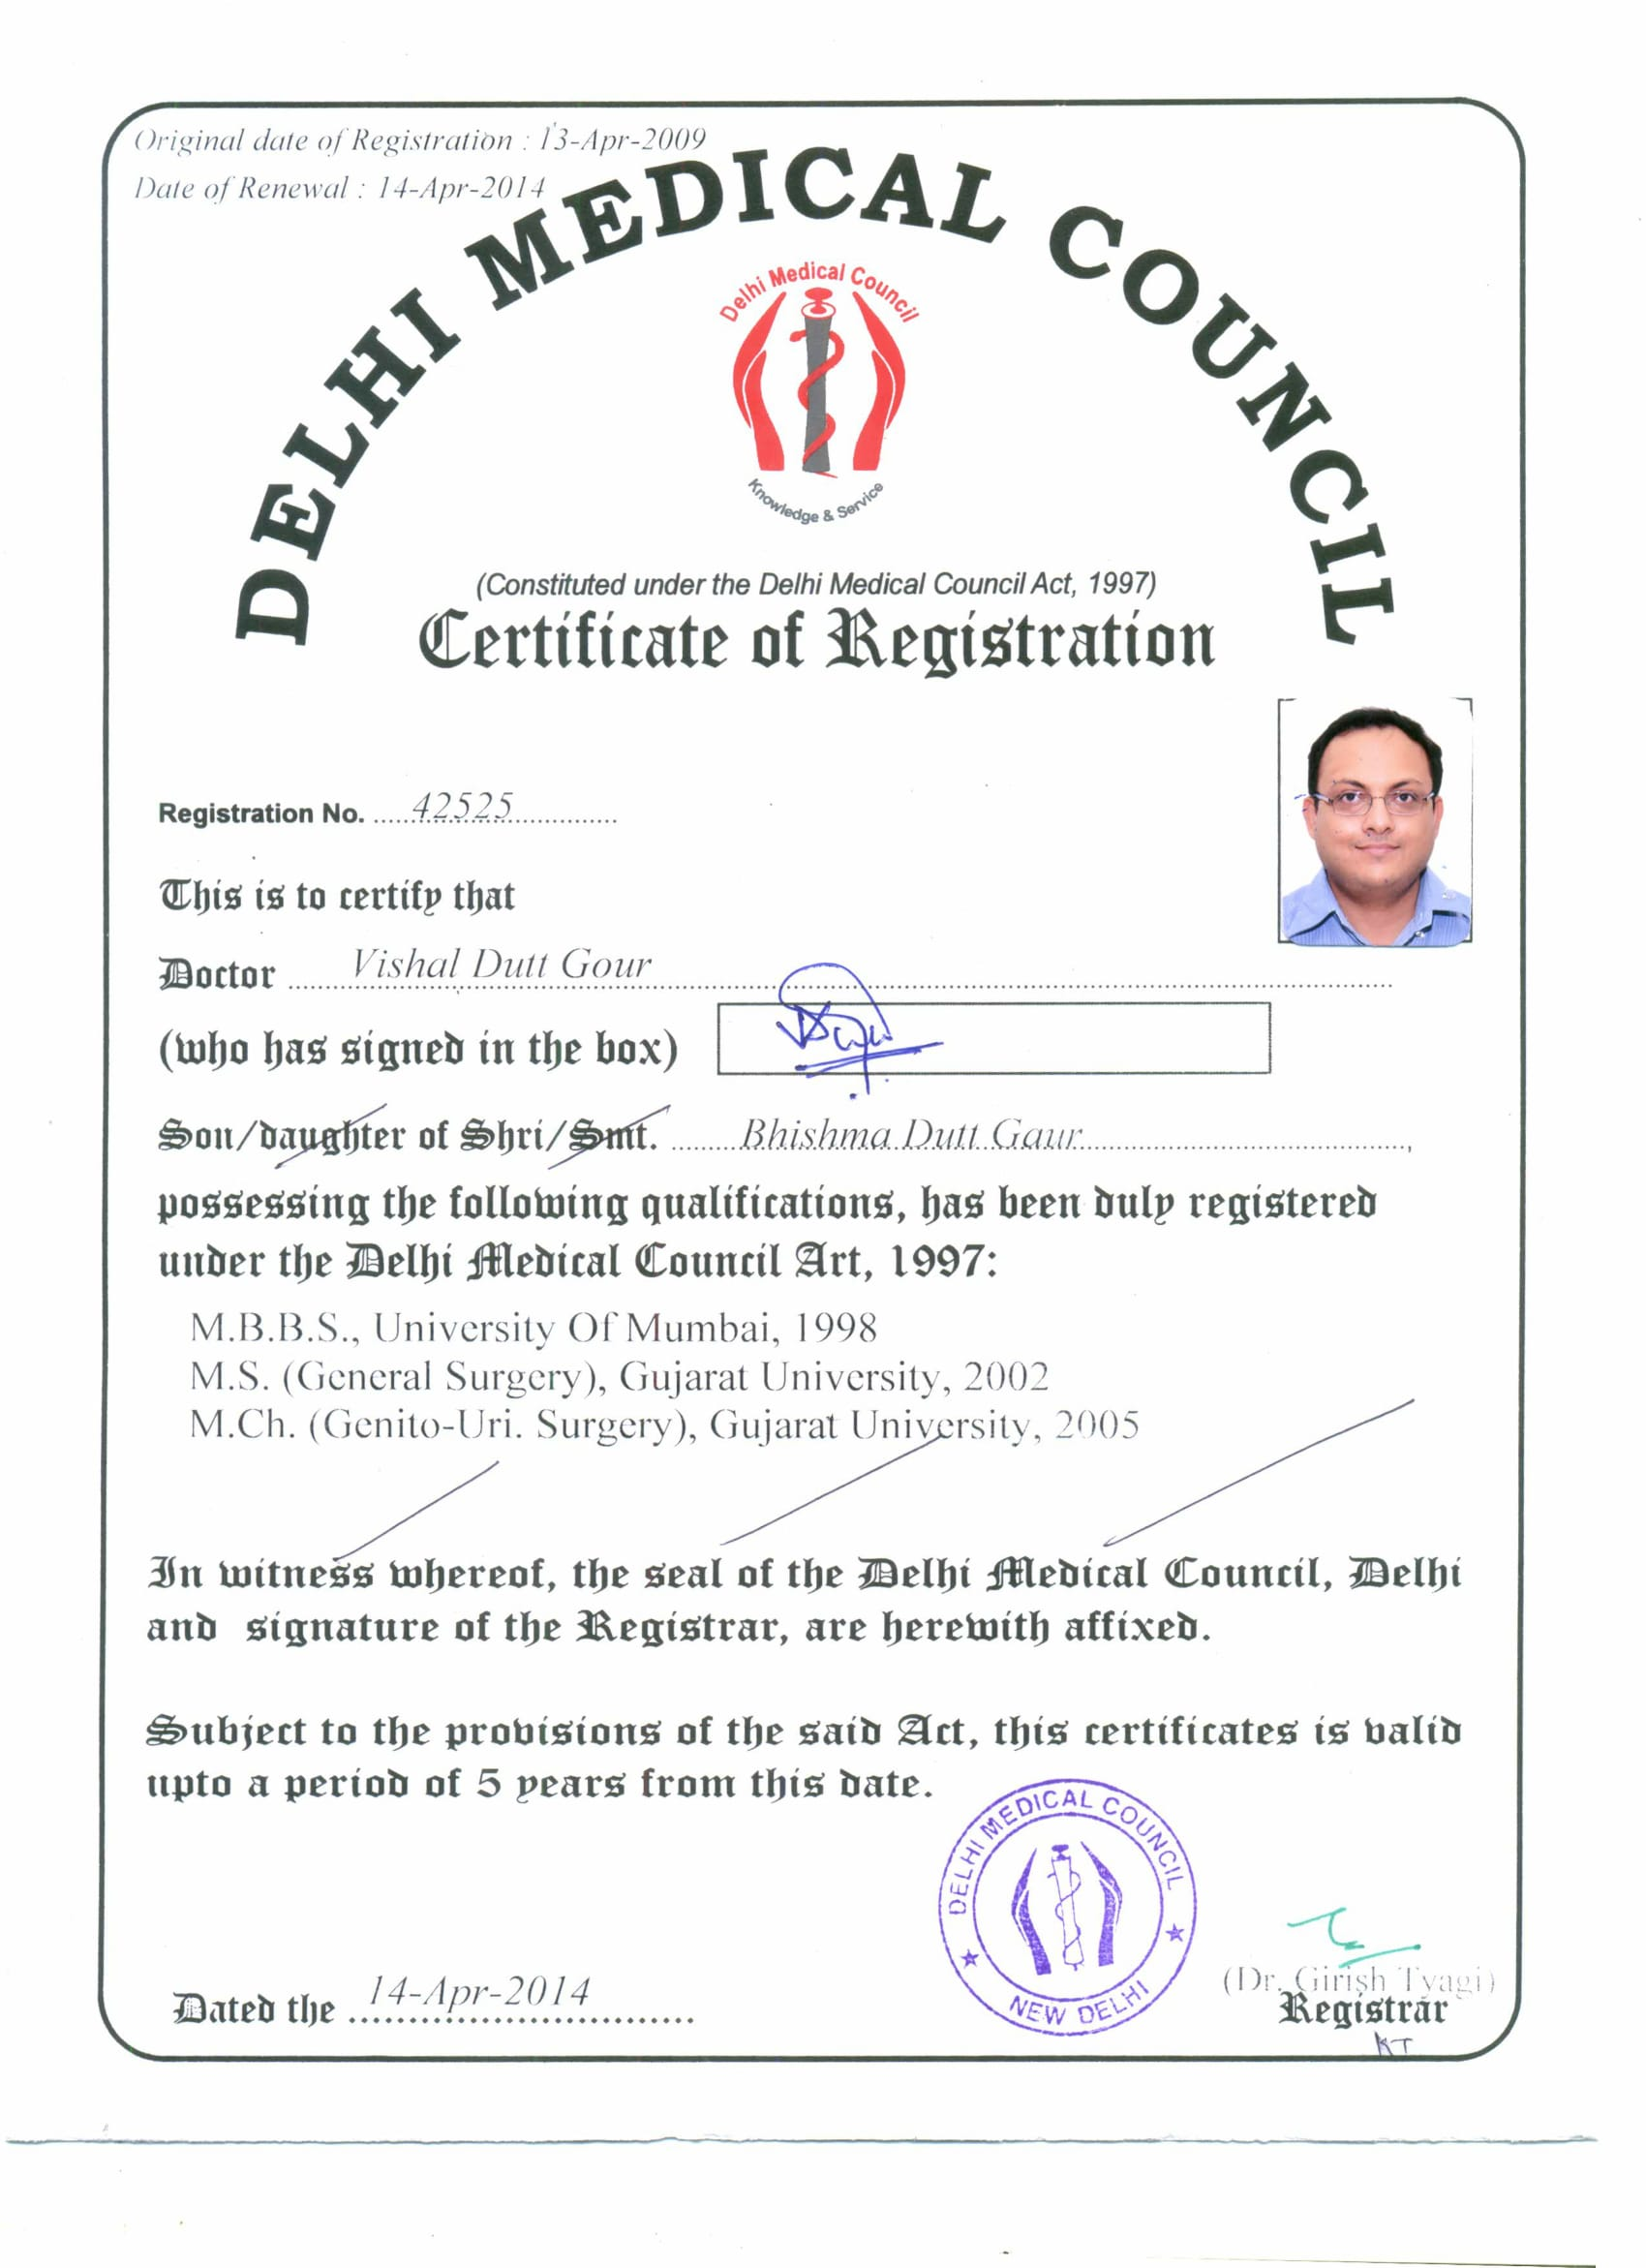 Dr Shivani Sachdev Gour Certificatation of Delhi Medical Council